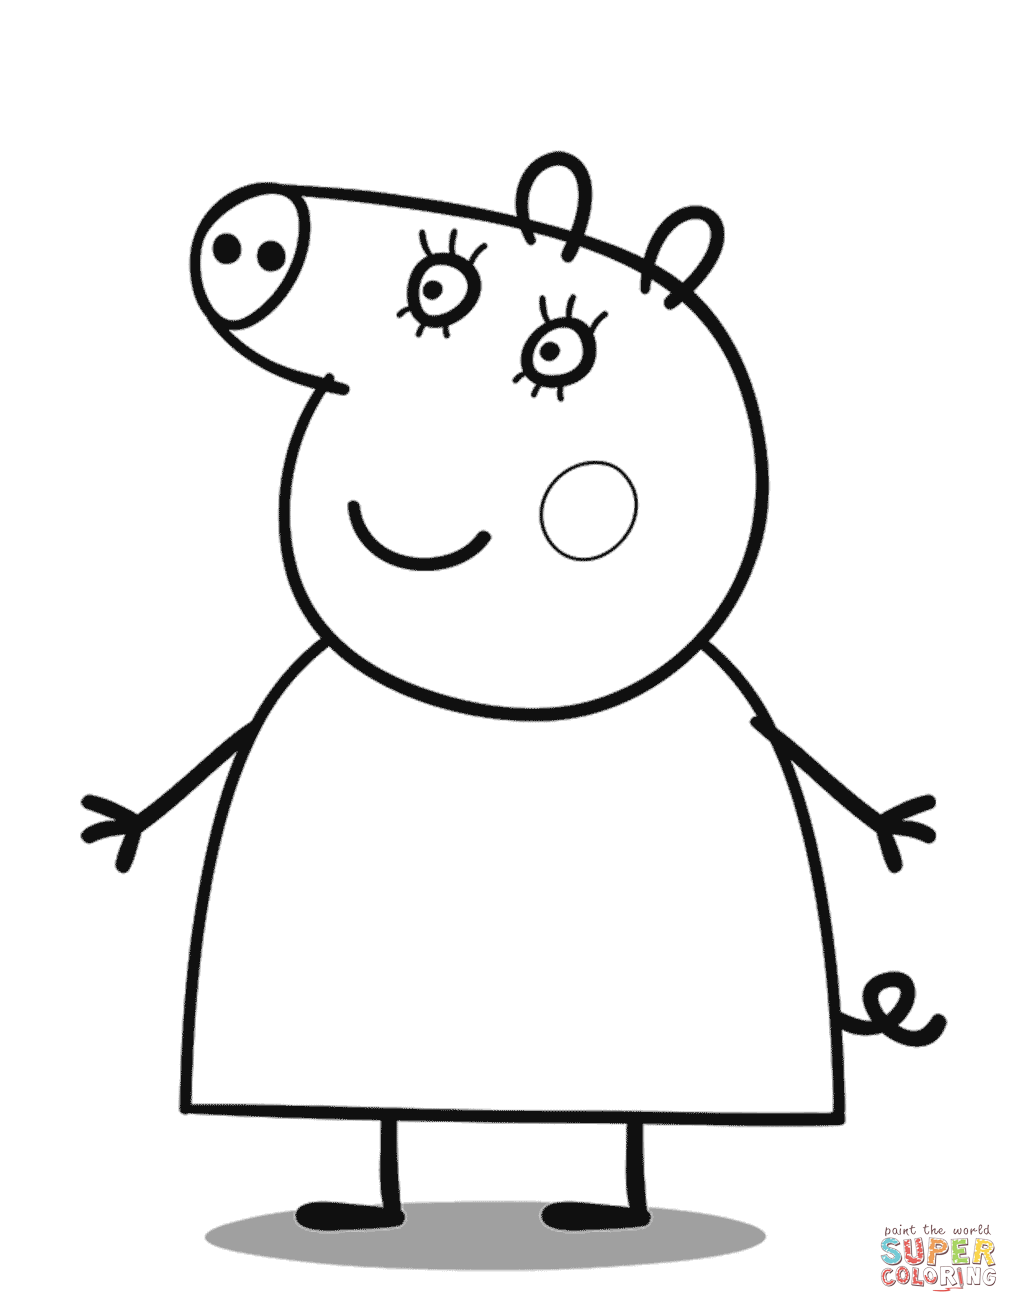 1019x1313 Pig In The Mud Coloring Pages Online Animals Teacup Page Animal